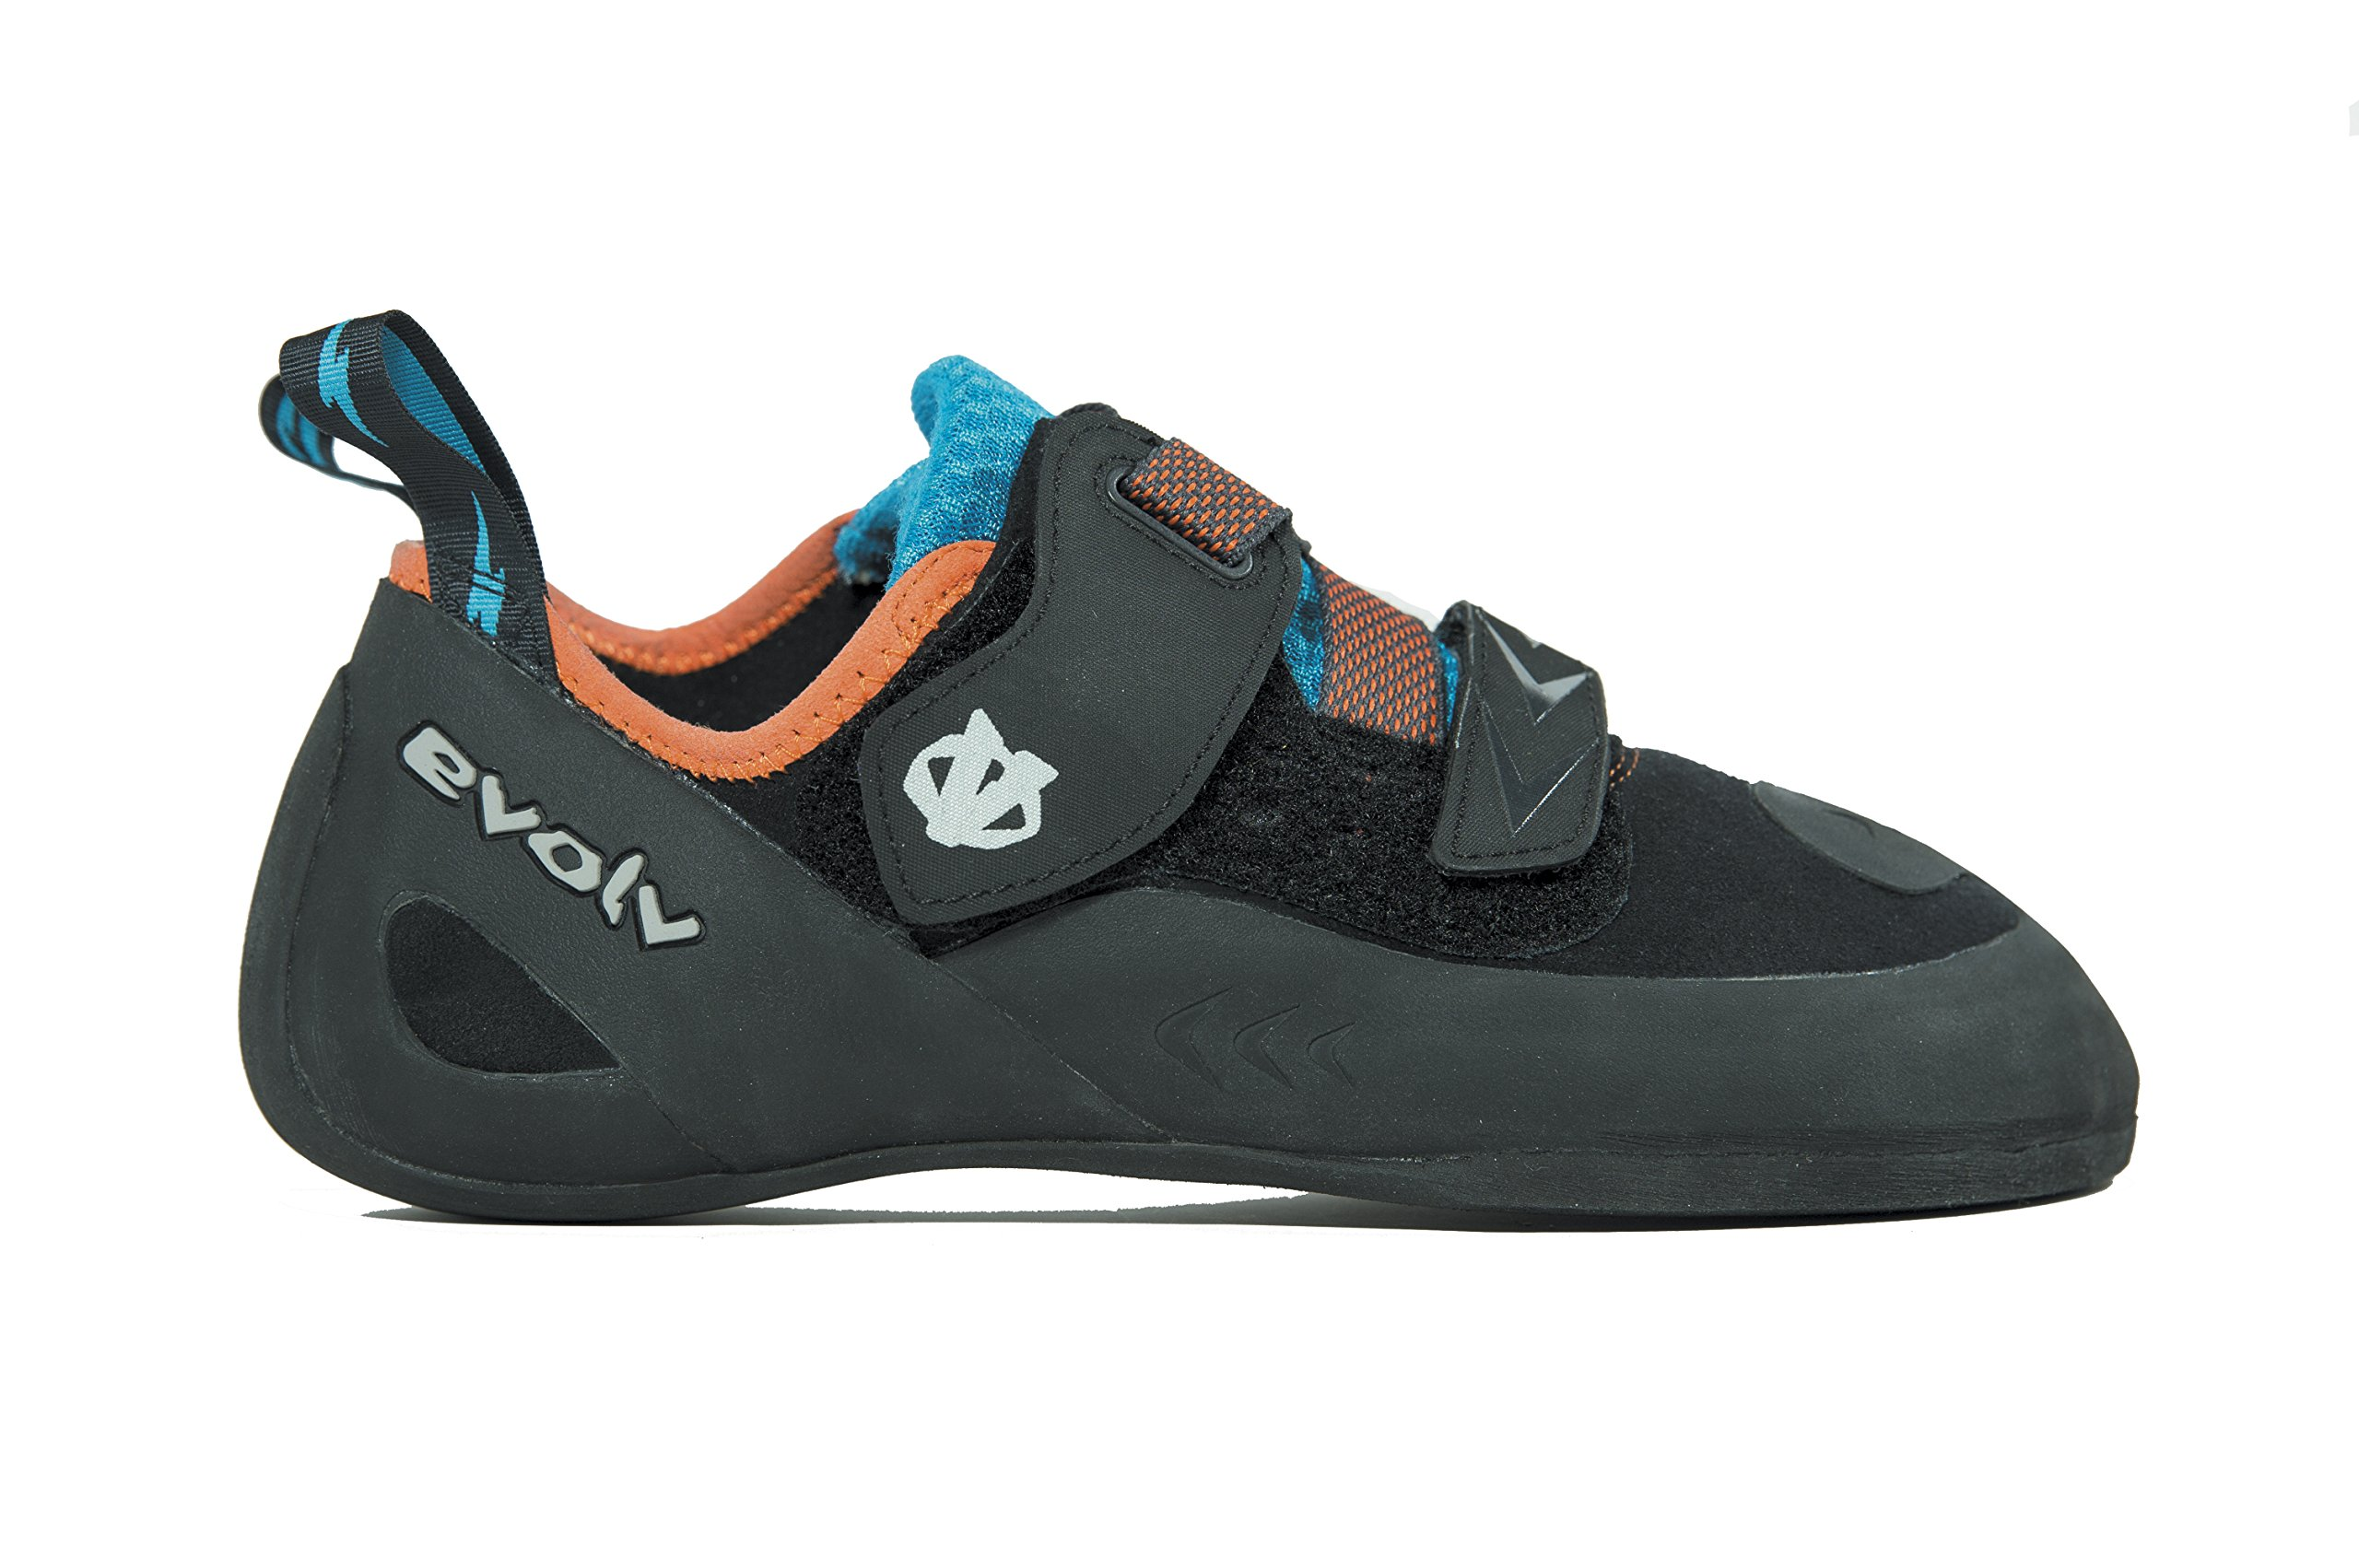 Evolv Kronos Climbing Shoe - Black/Orange 6.5